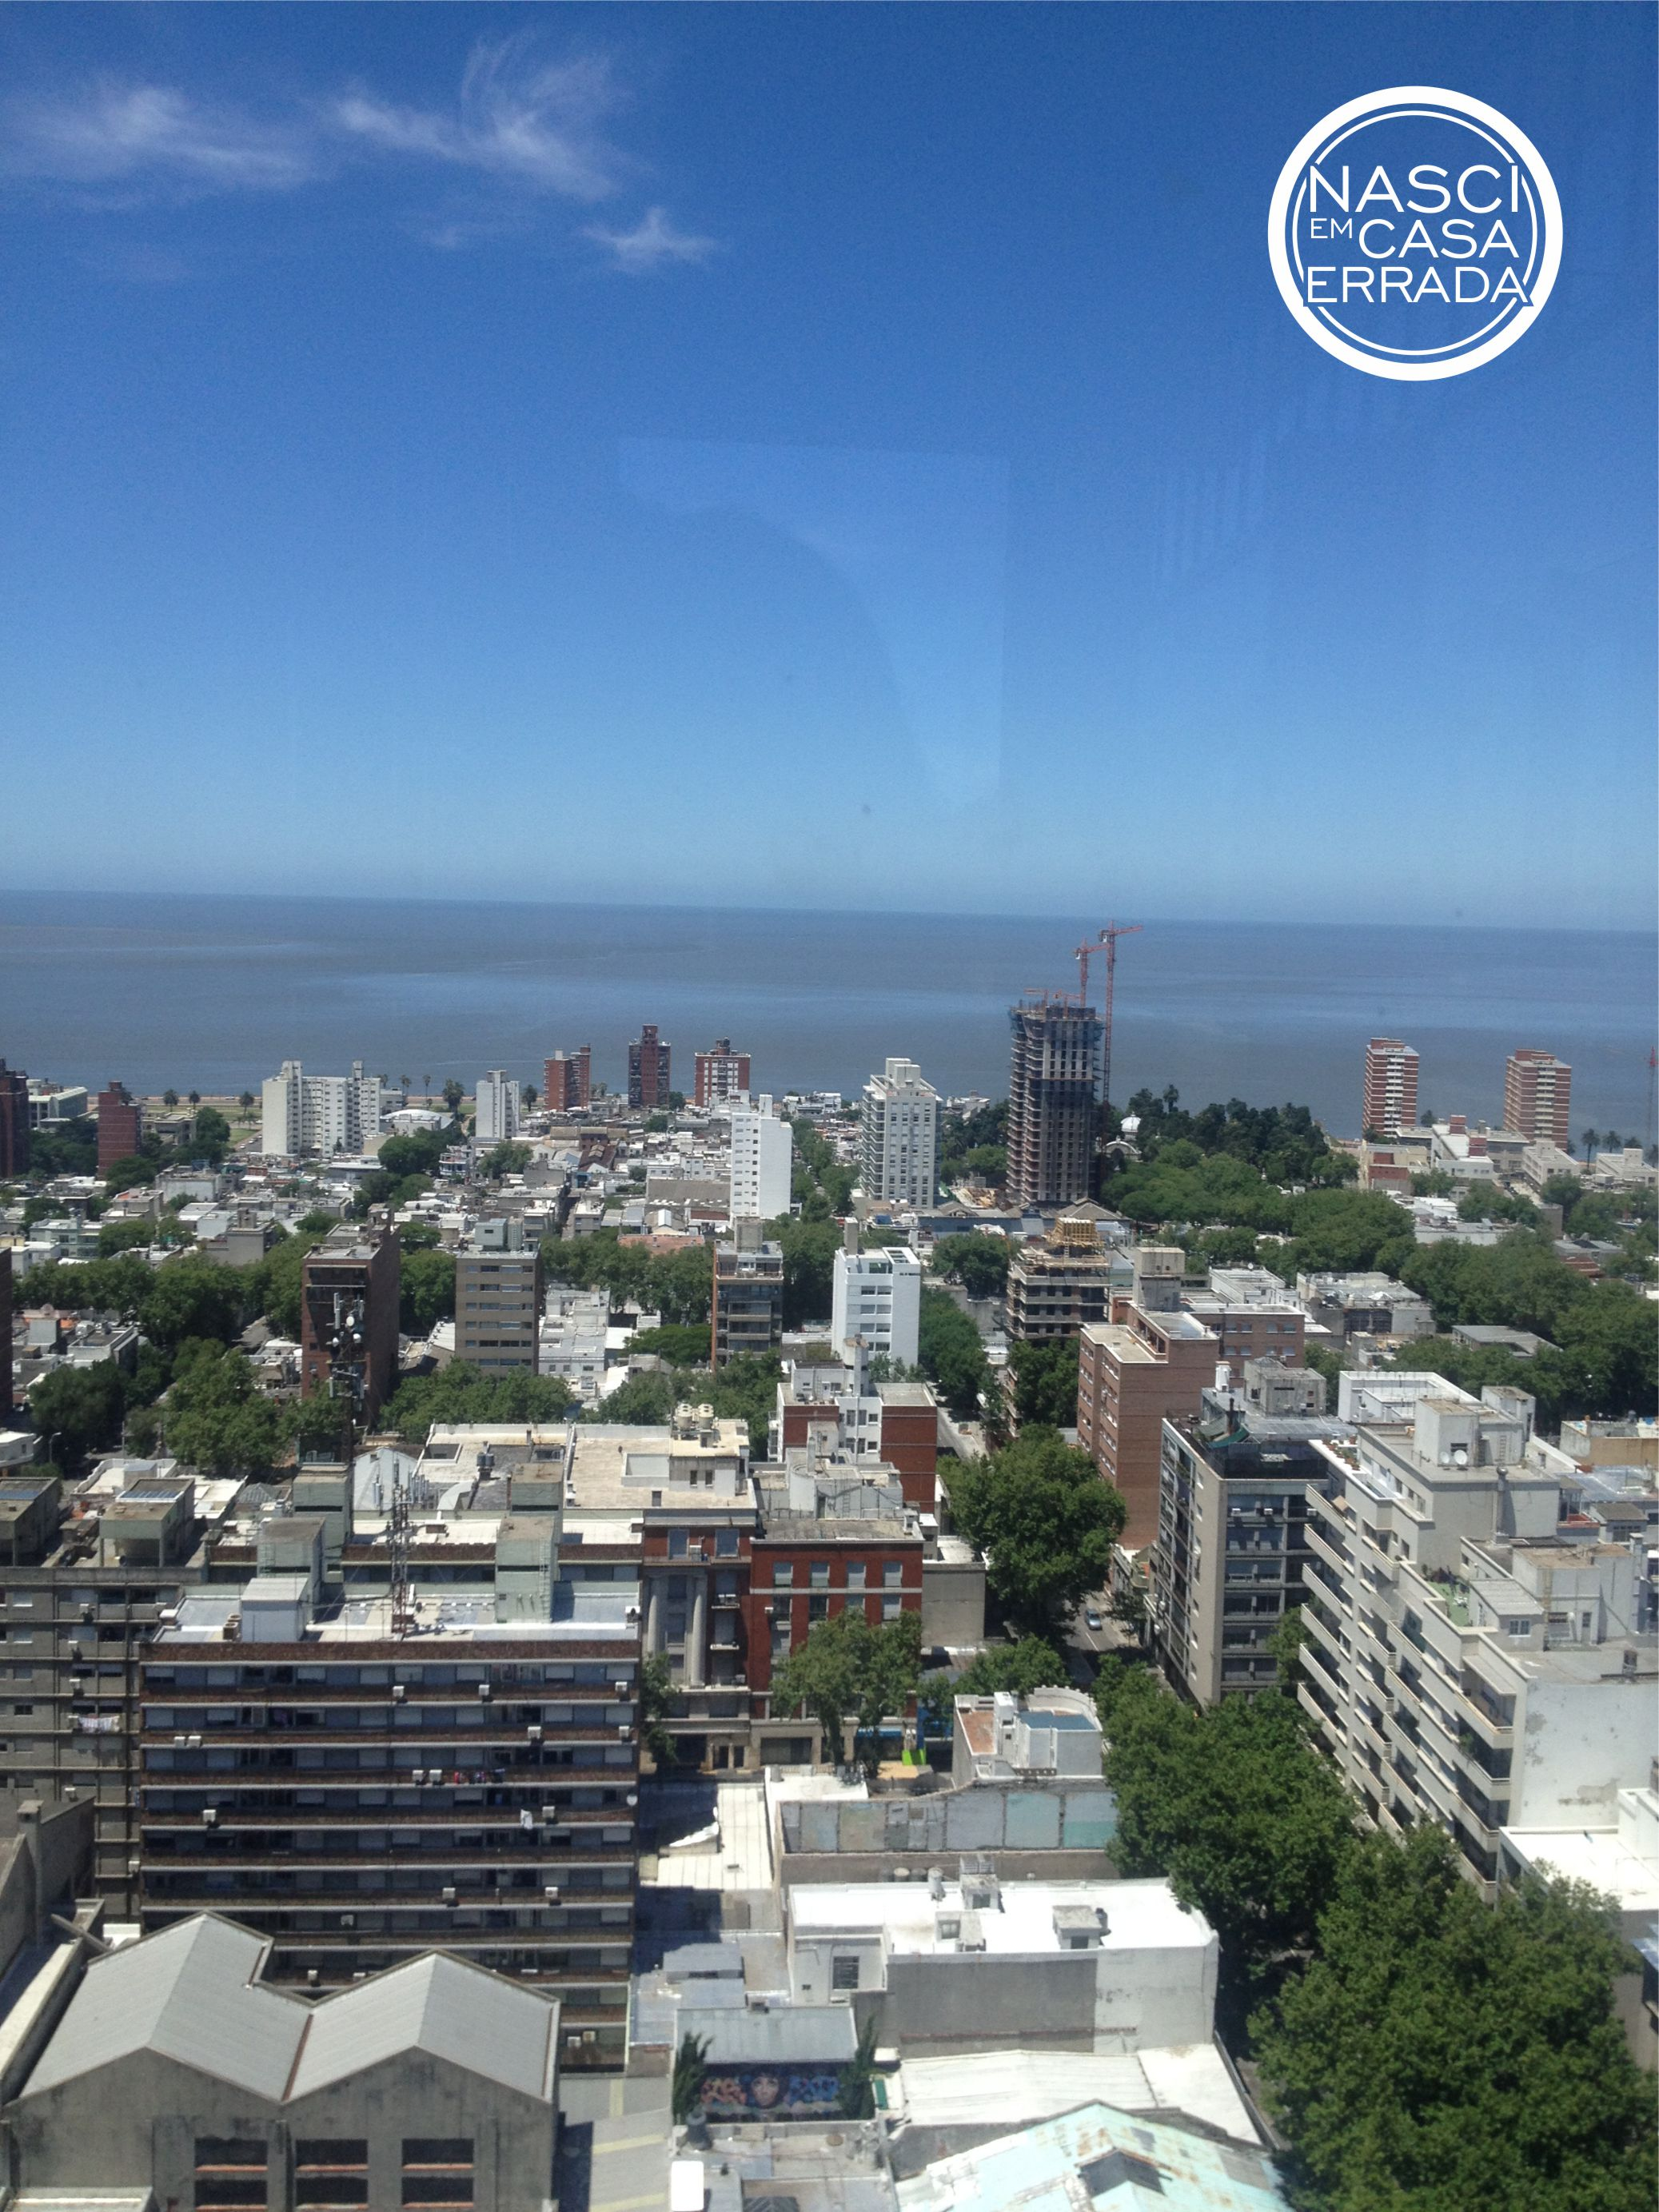 INTENDENCIA DE MONTEVIDEO 01